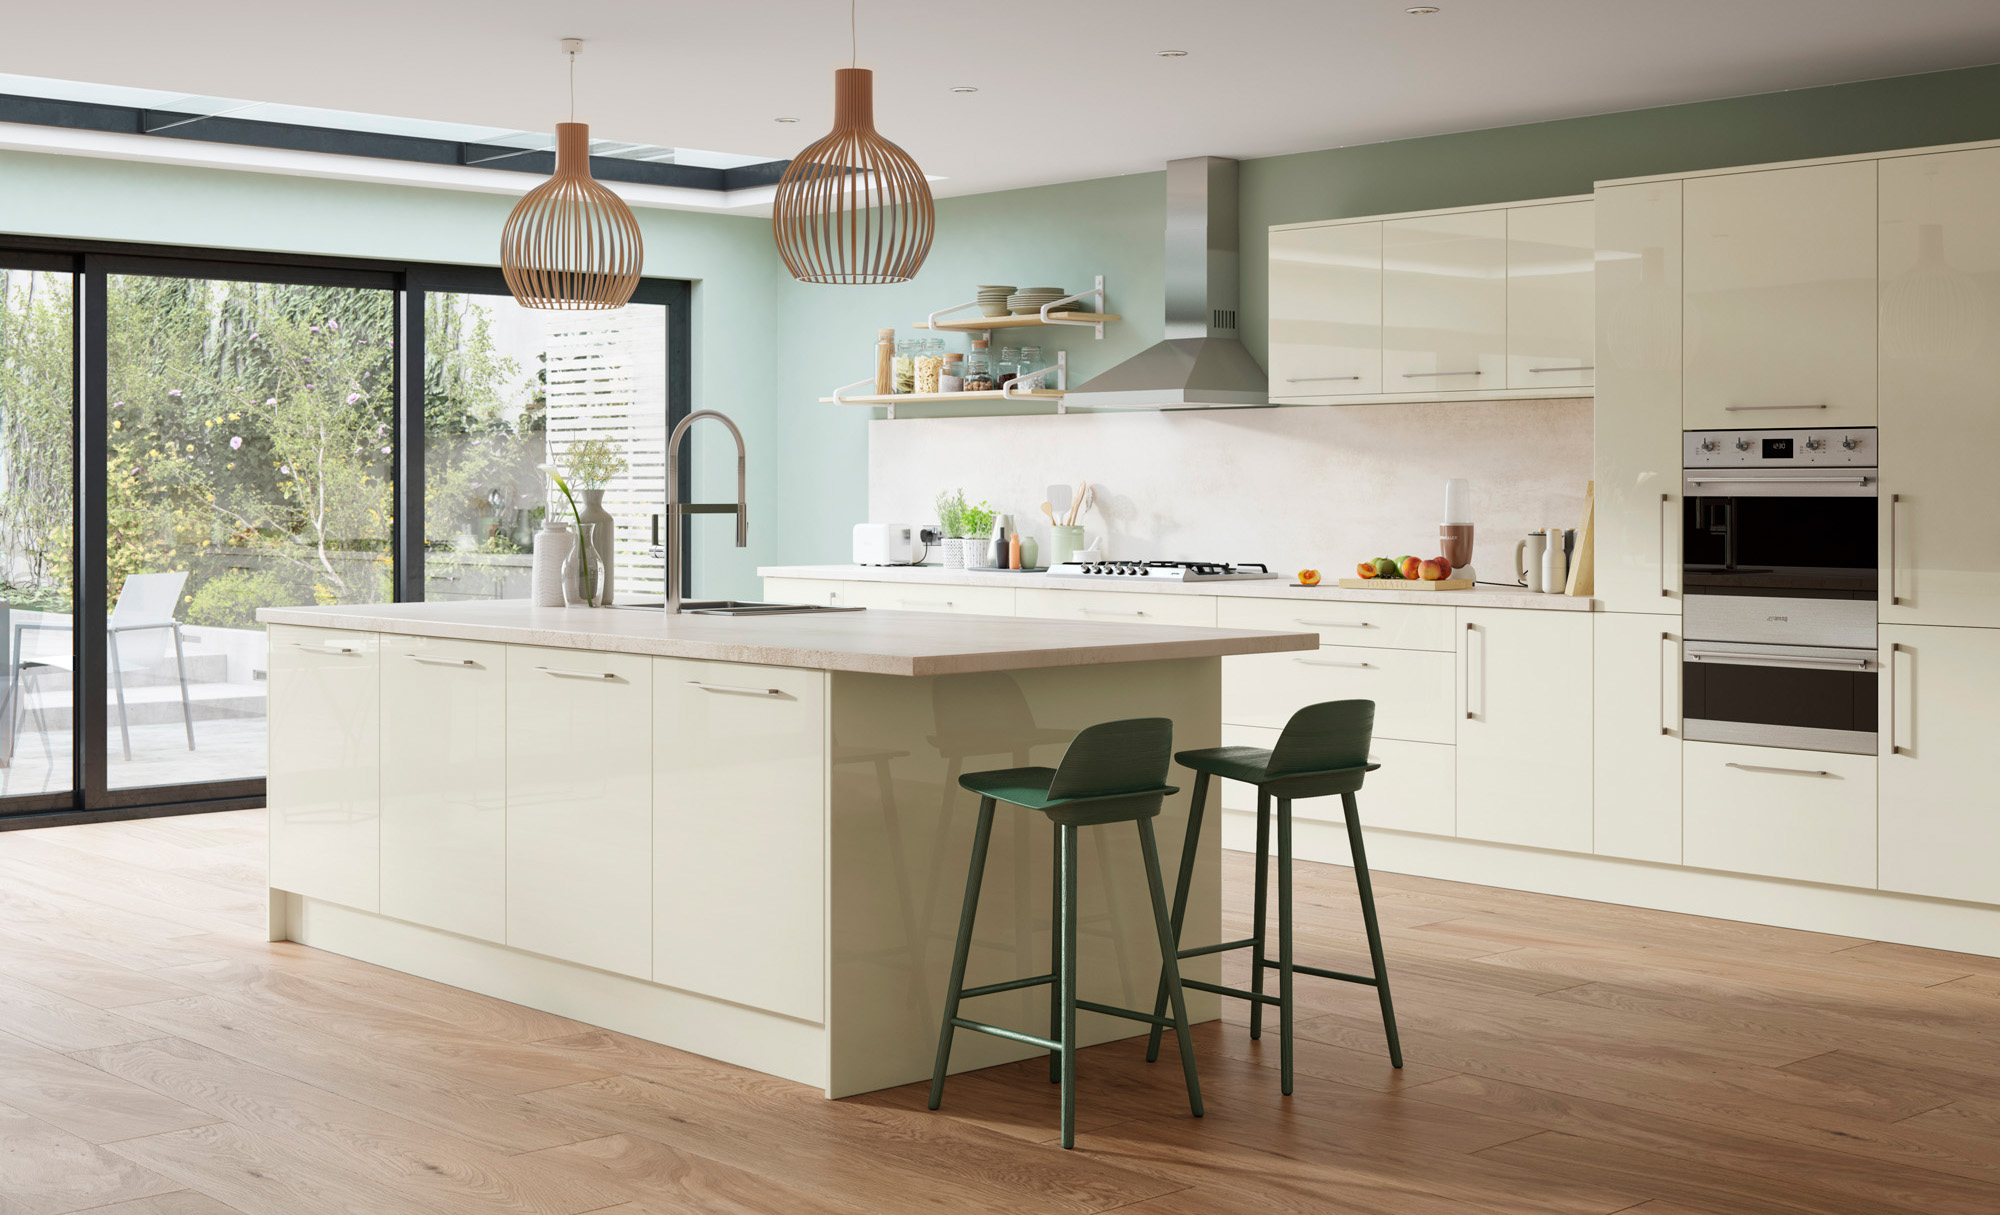 Modern Contemporary Zola Gloss Porcelain - Kitchen Design - Alan Kelly Kitchens - Waterford